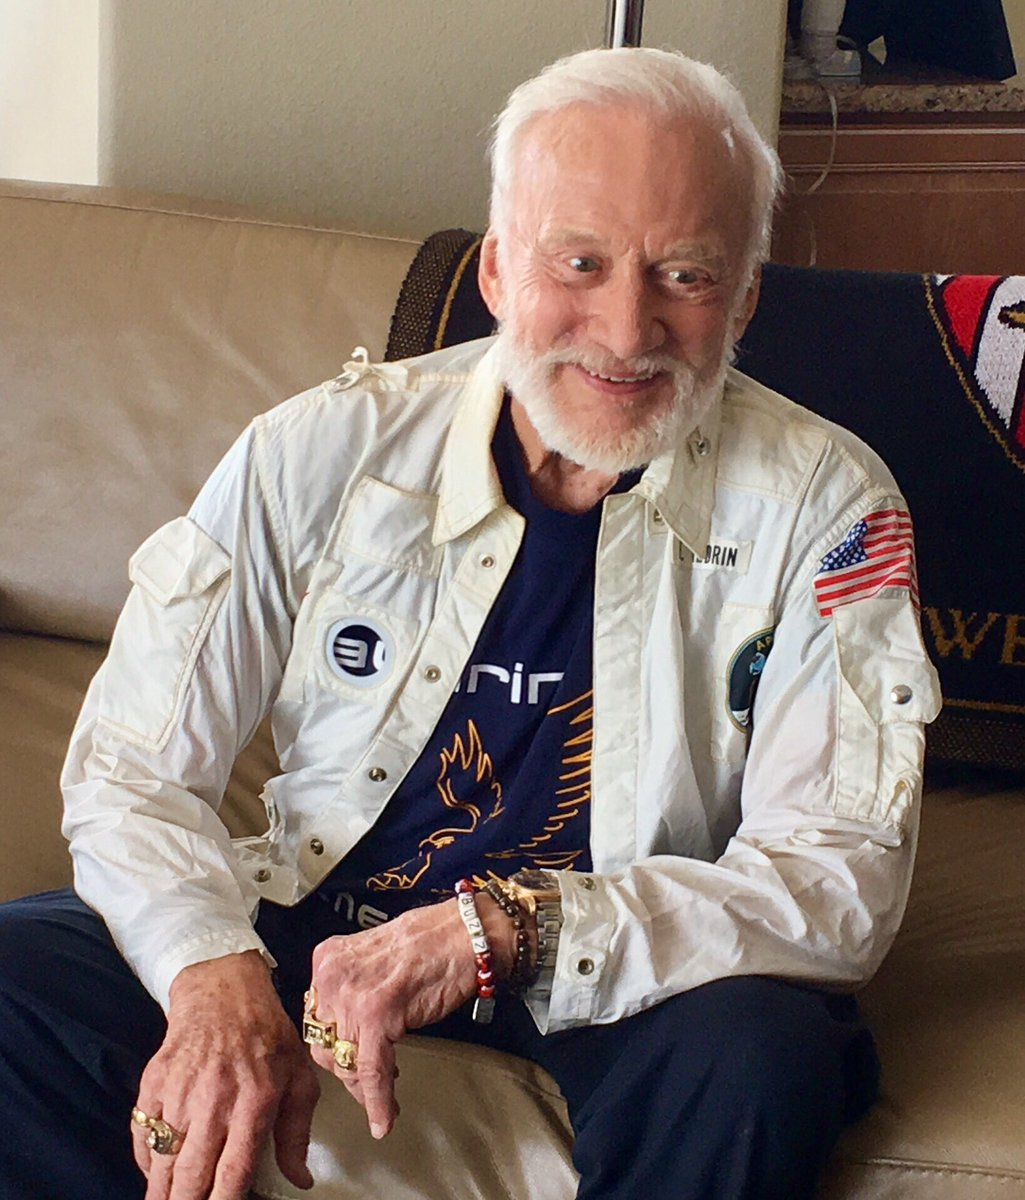 I haven't worn this jacket since I returned from the moon almost 48 years ago. Still fits!  #Apollo11 https://t.co/njtDEhDj9v